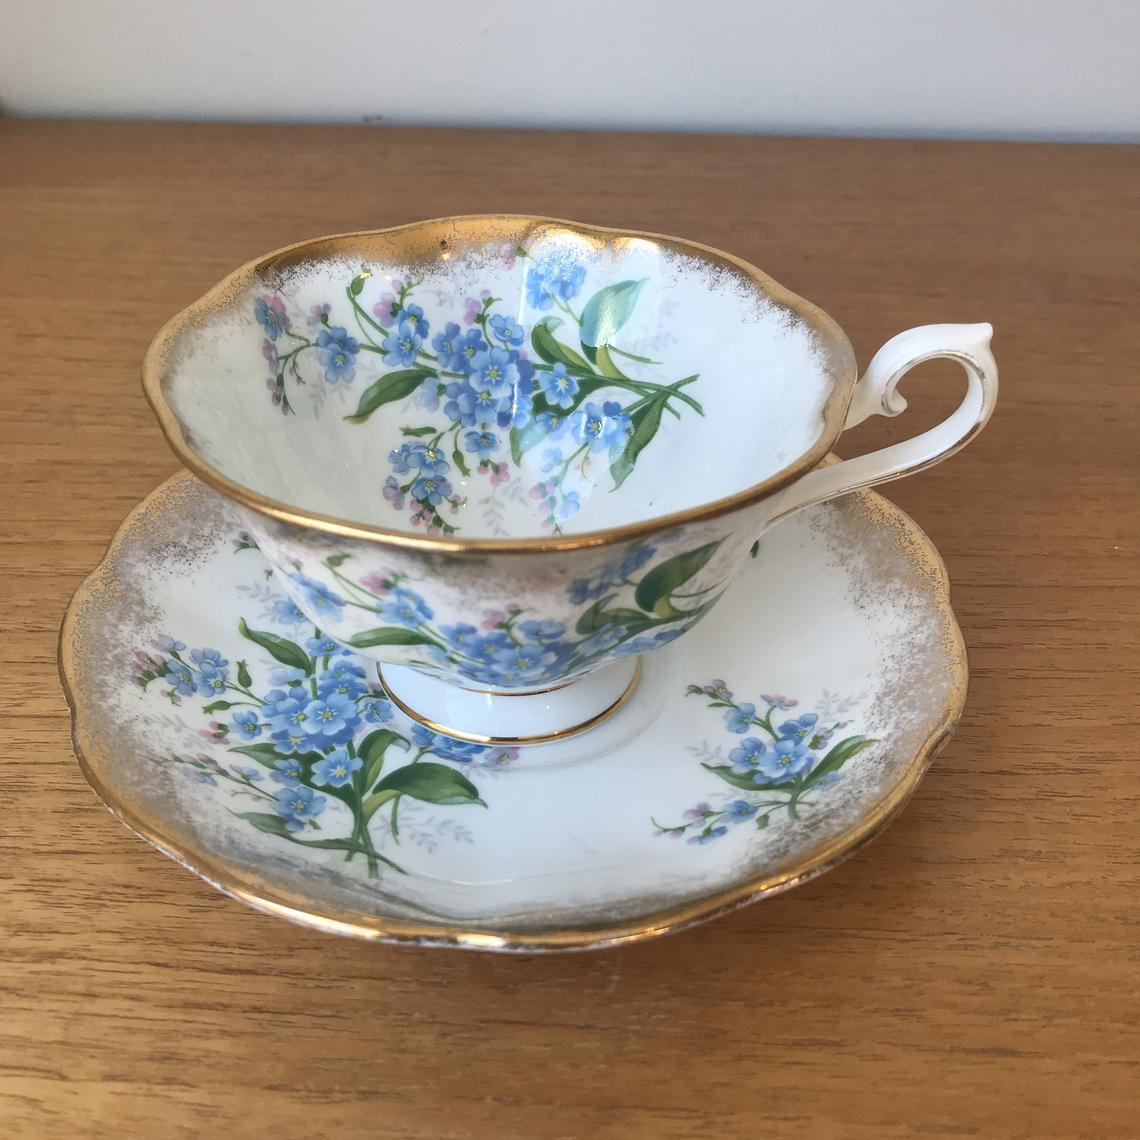 Royal Albert Tea Cup and Saucer, Blue Forget Me Not Flower Teacup and Saucer, Avon Shape Heavy Gold Bone China